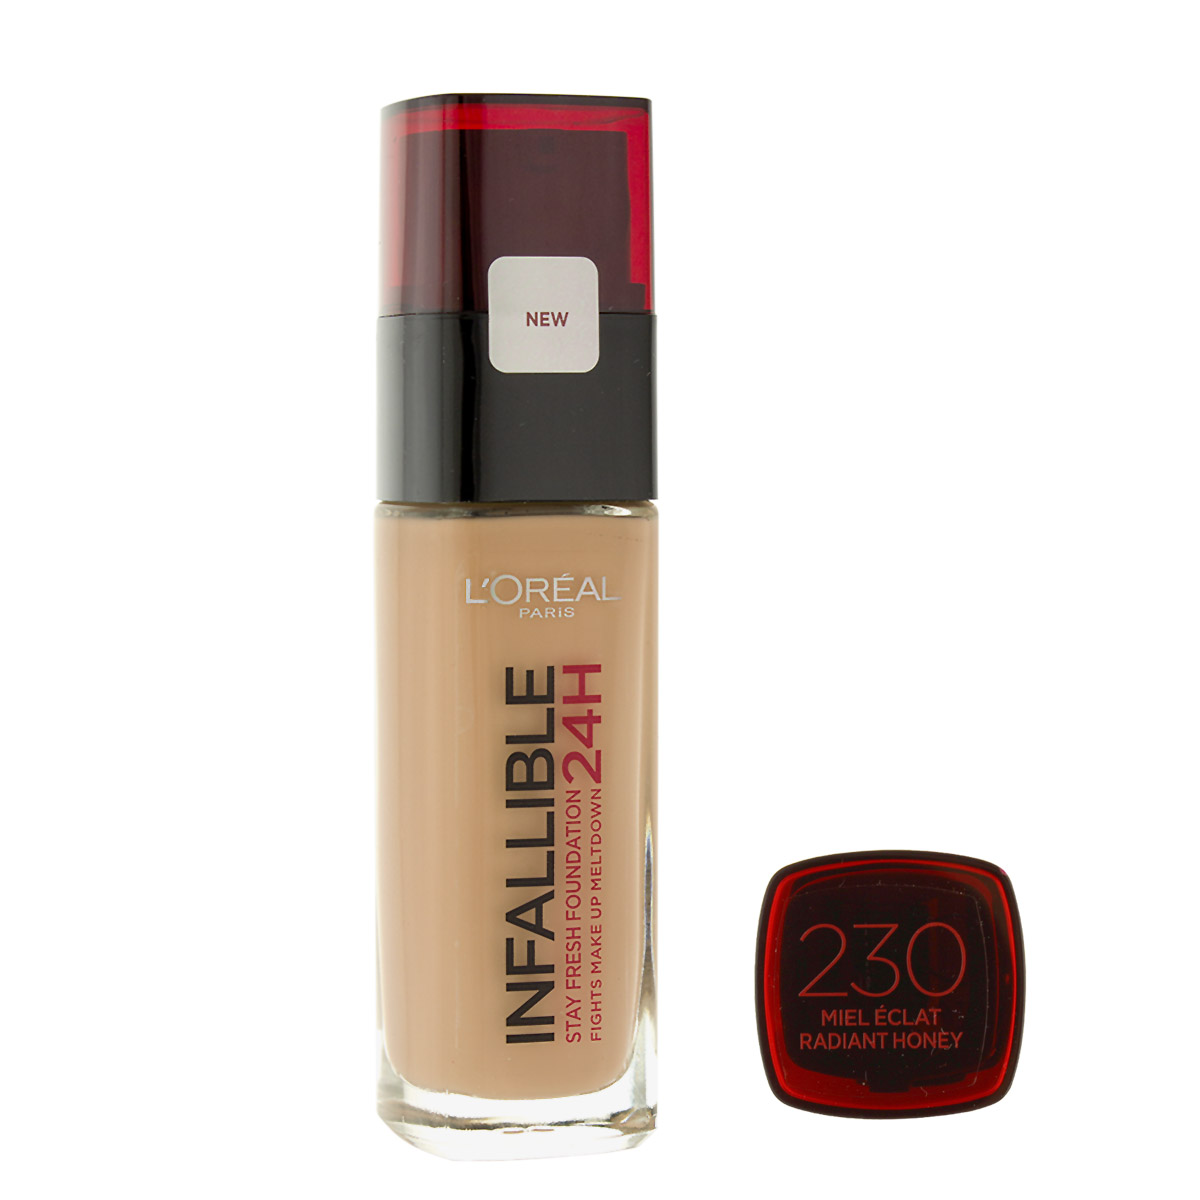 L´Oreal Paris Infallible 24H make-up (230 Radiant Honey) 30 ml